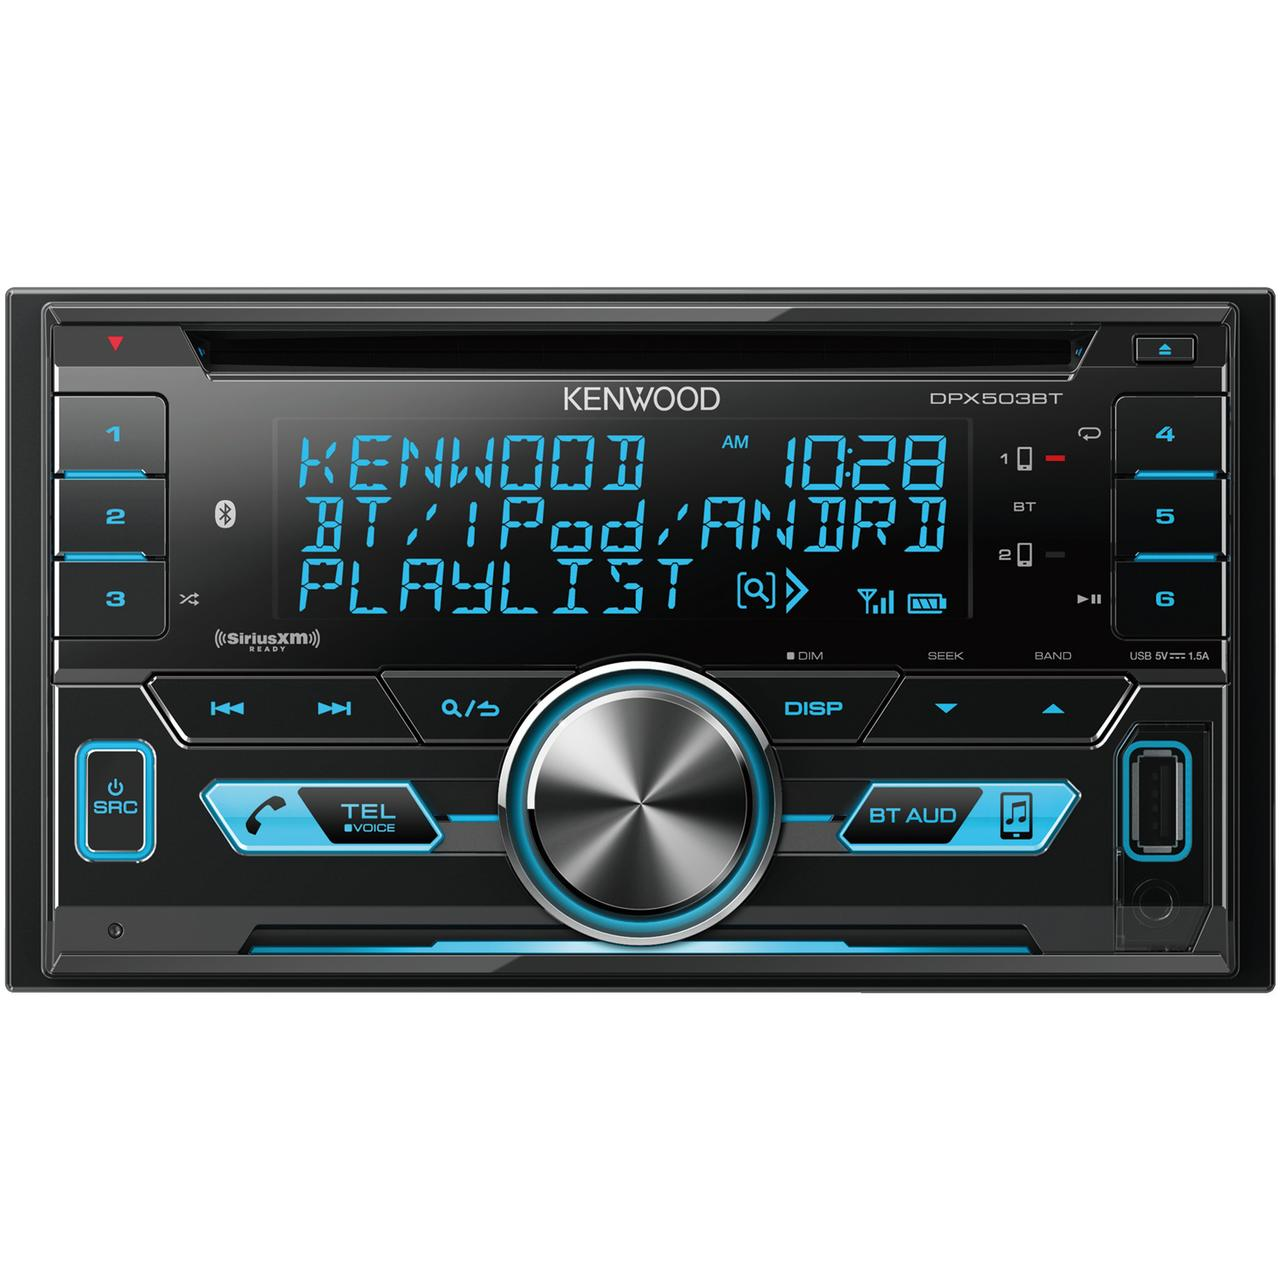 KENWOOD DPX503BT Double-DIN In-Dash AM/FM CD Receiver with Bluetooth & SiriusXM Ready